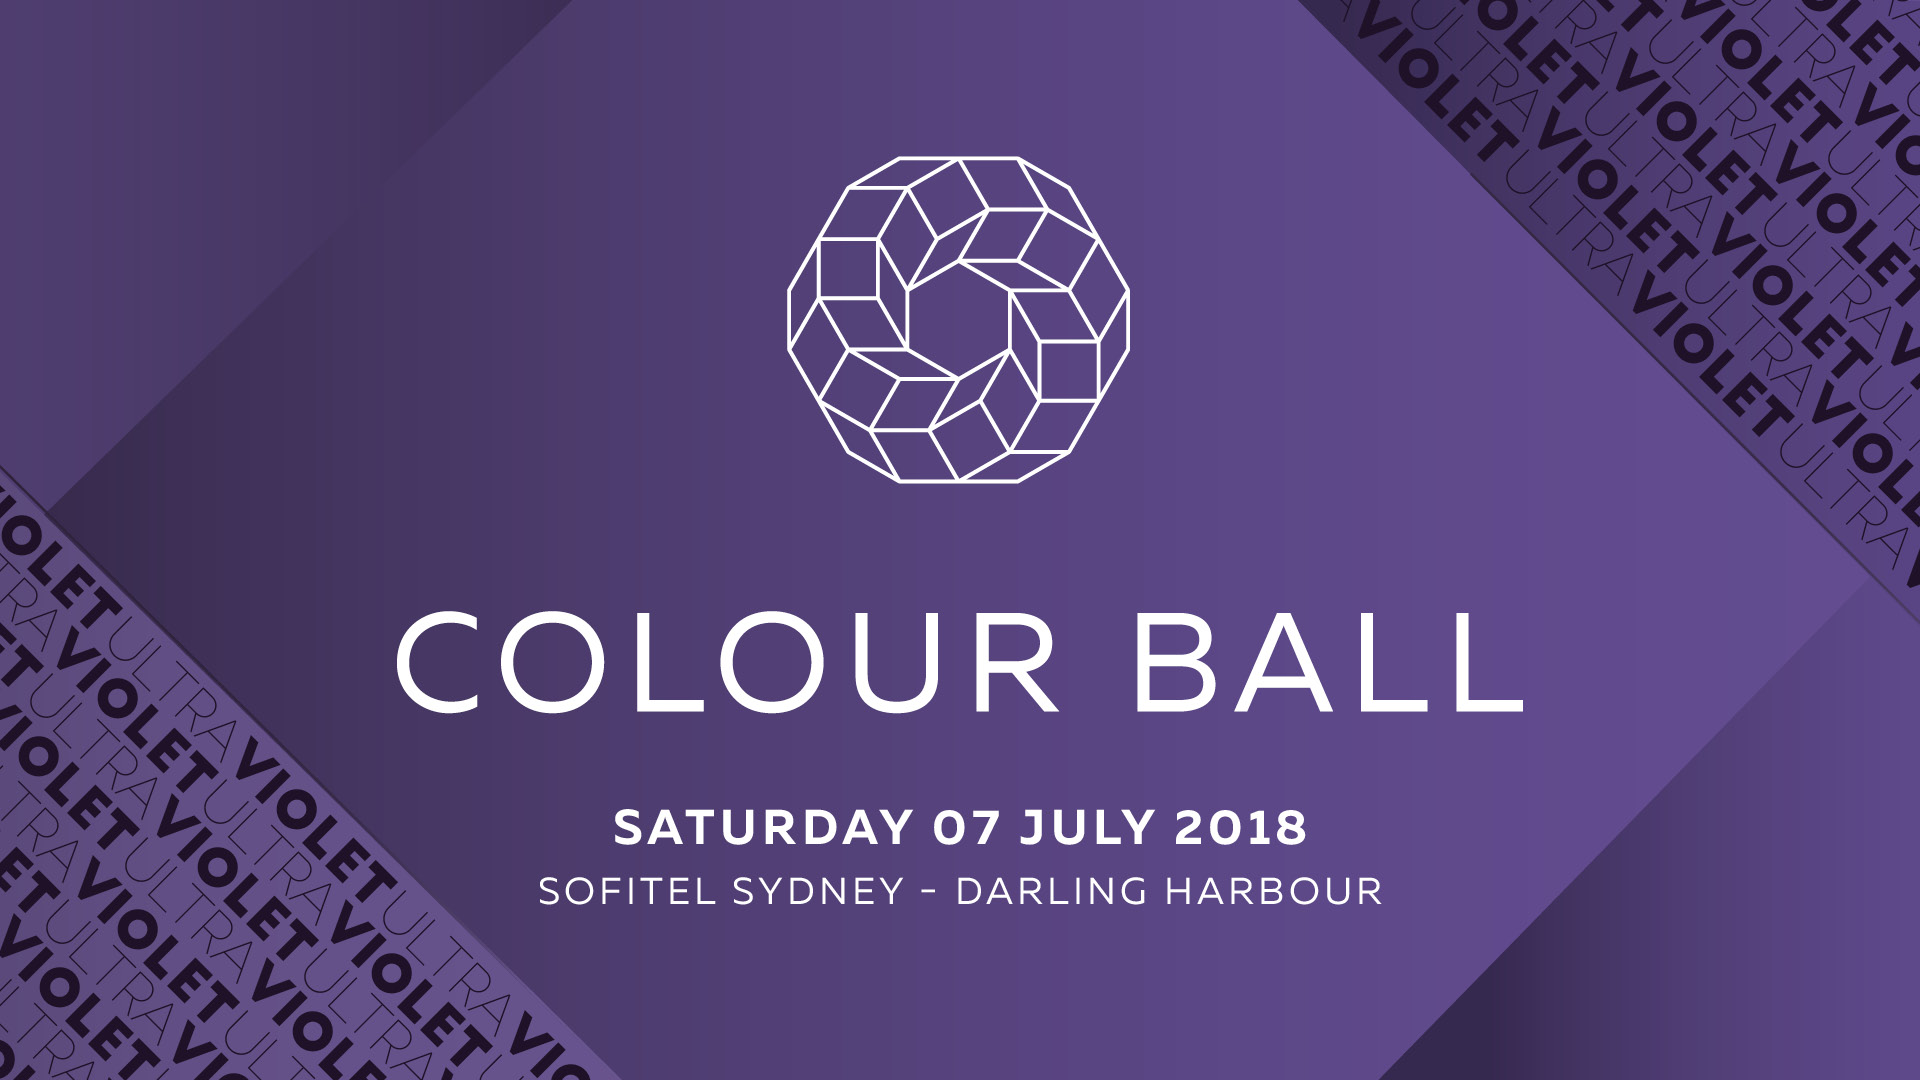 Colourball_2018_facebook-event-image-1920x1080_Violet.jpg